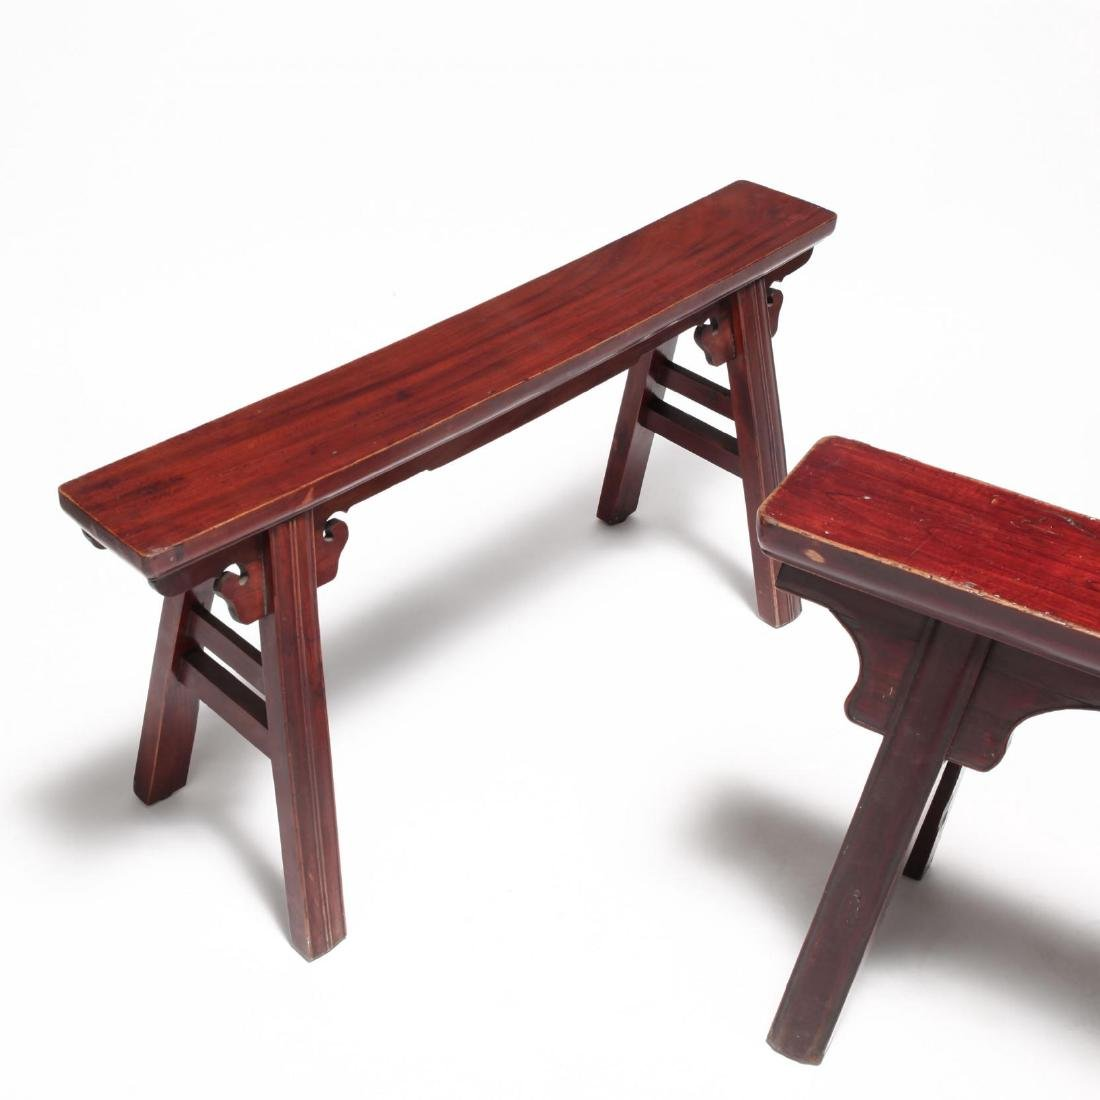 Two Chinese Wooden Benches - 2